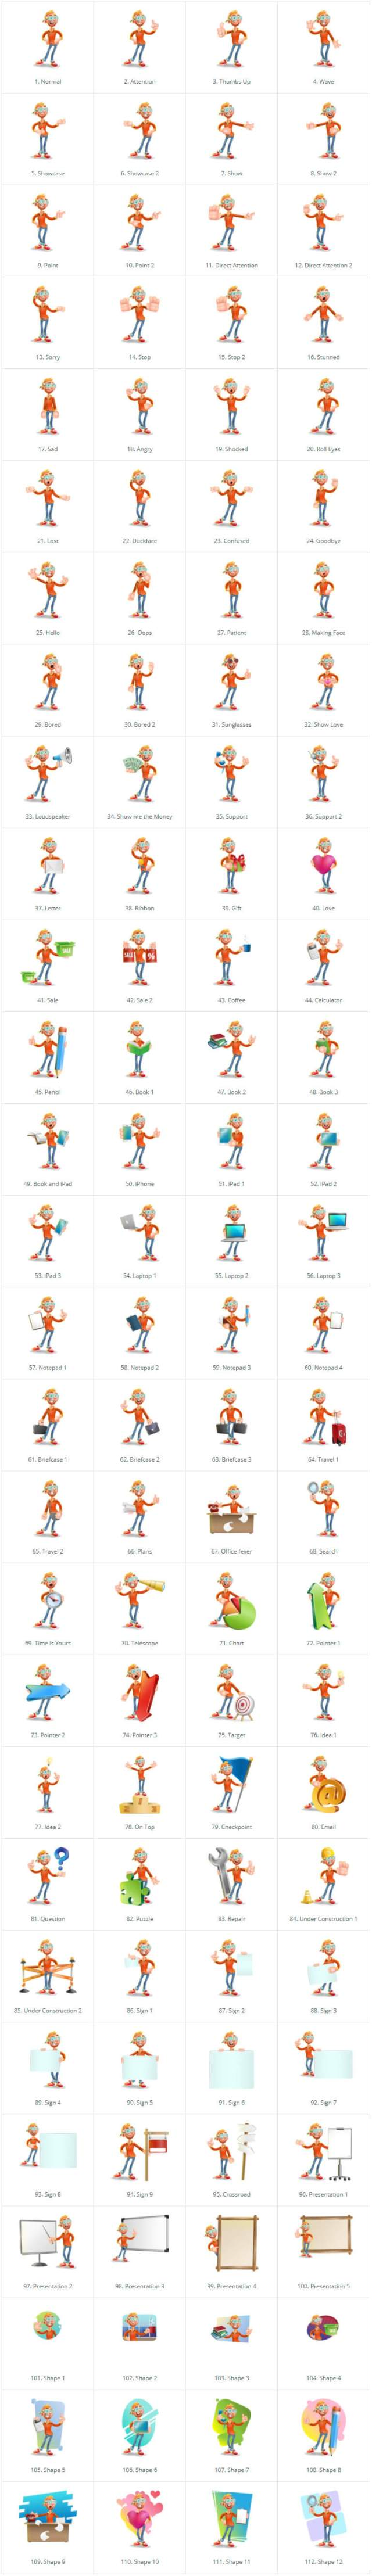 Casual Man with Glasses 3D Vector Cartoon Character